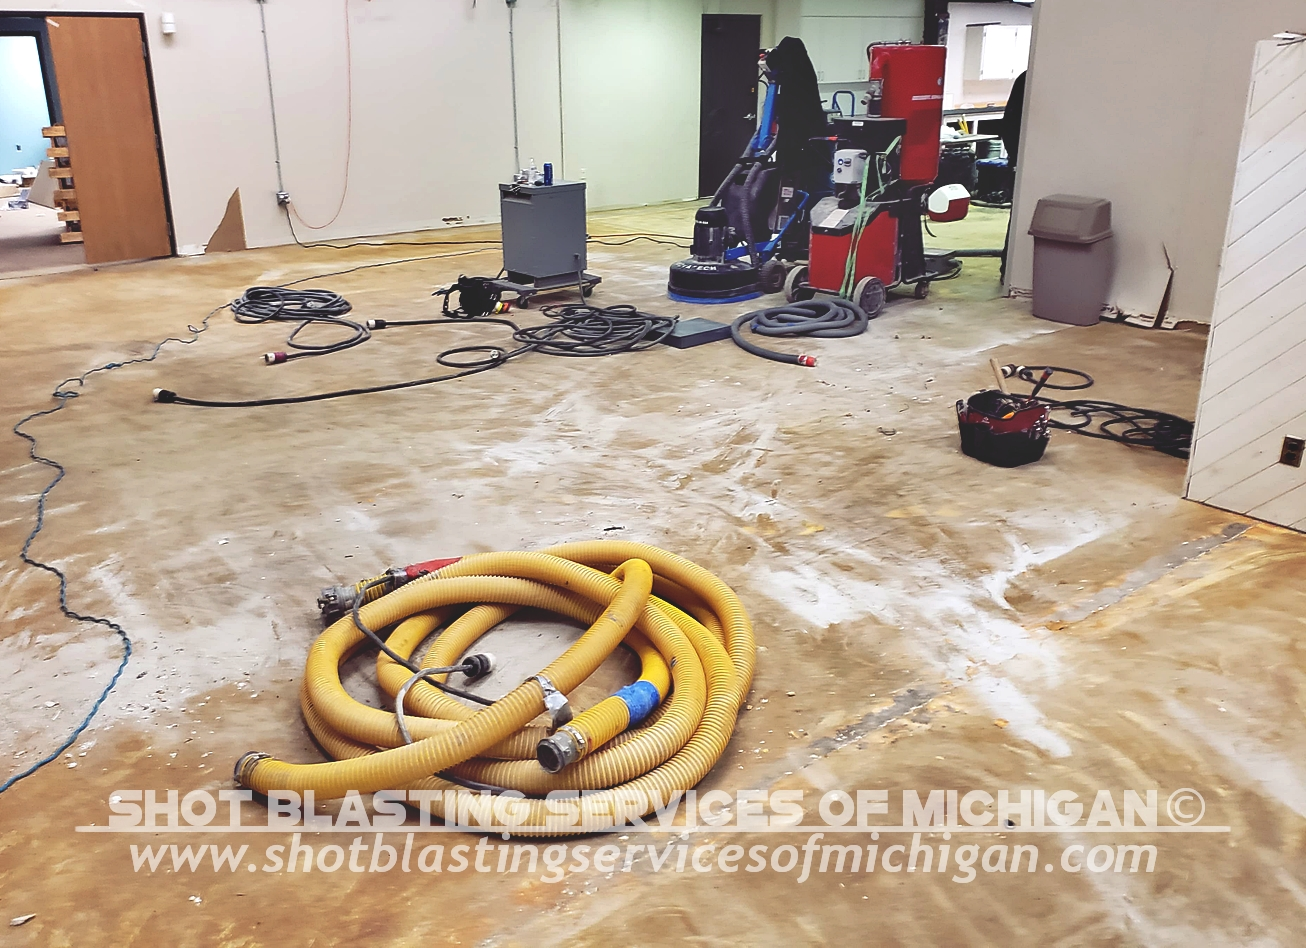 Shot-Blasting-Services-Of-Michigan-Clear-Coat-02-2020-02-02